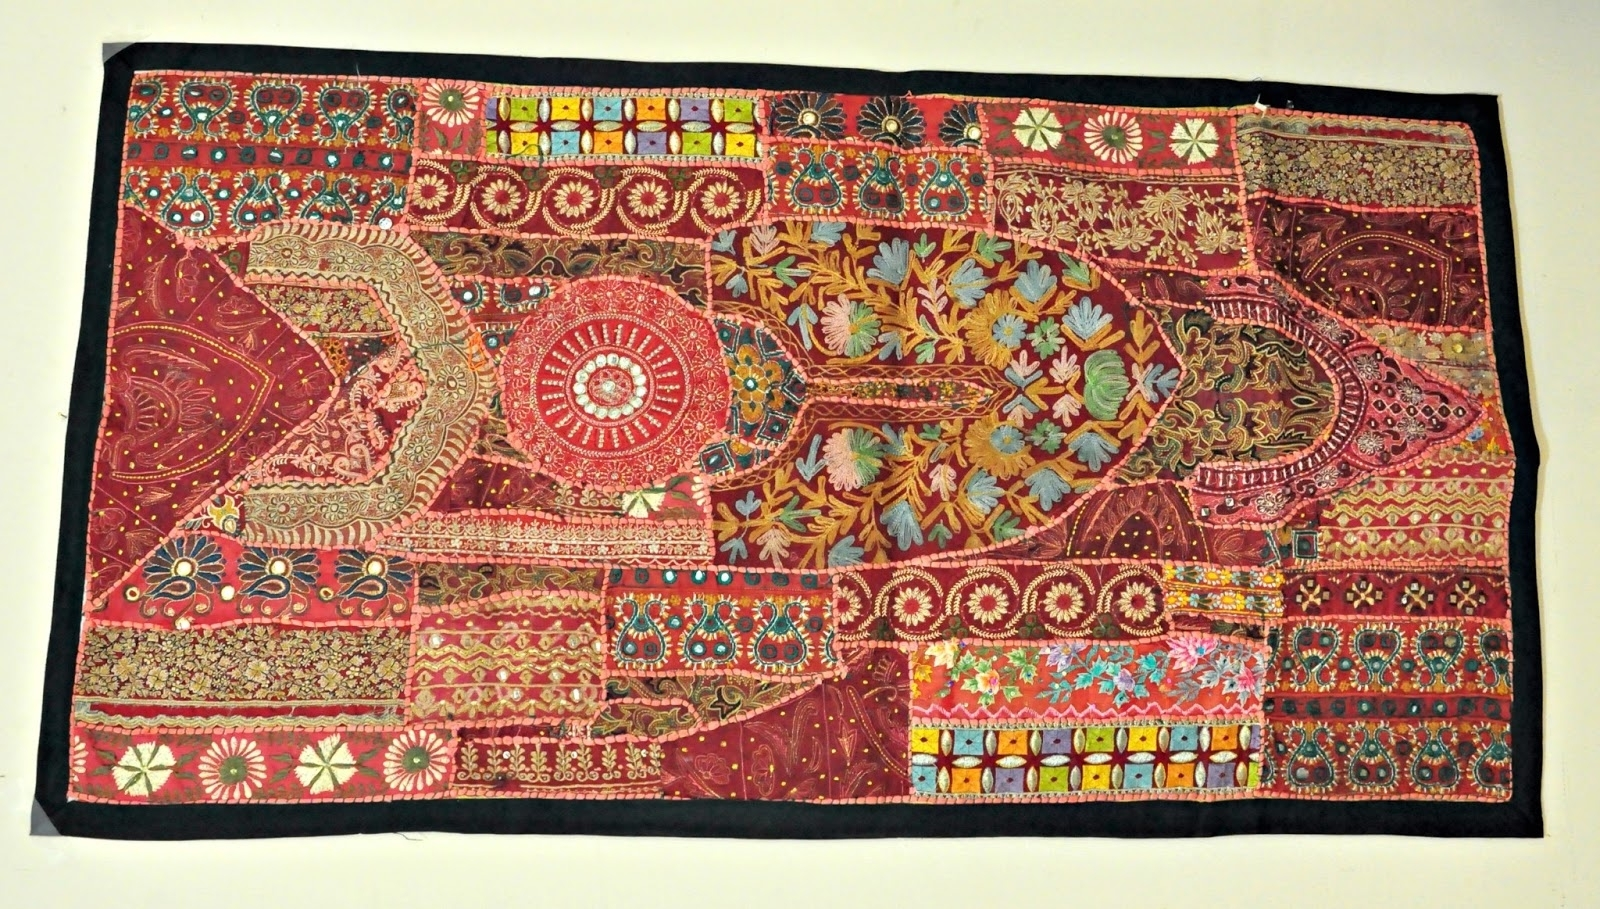 Trendy Vintage Textile Wall Art With Jaipur Handloom: Indian Vintage Handmade Patchwork Tapestry Wall (Gallery 6 of 15)